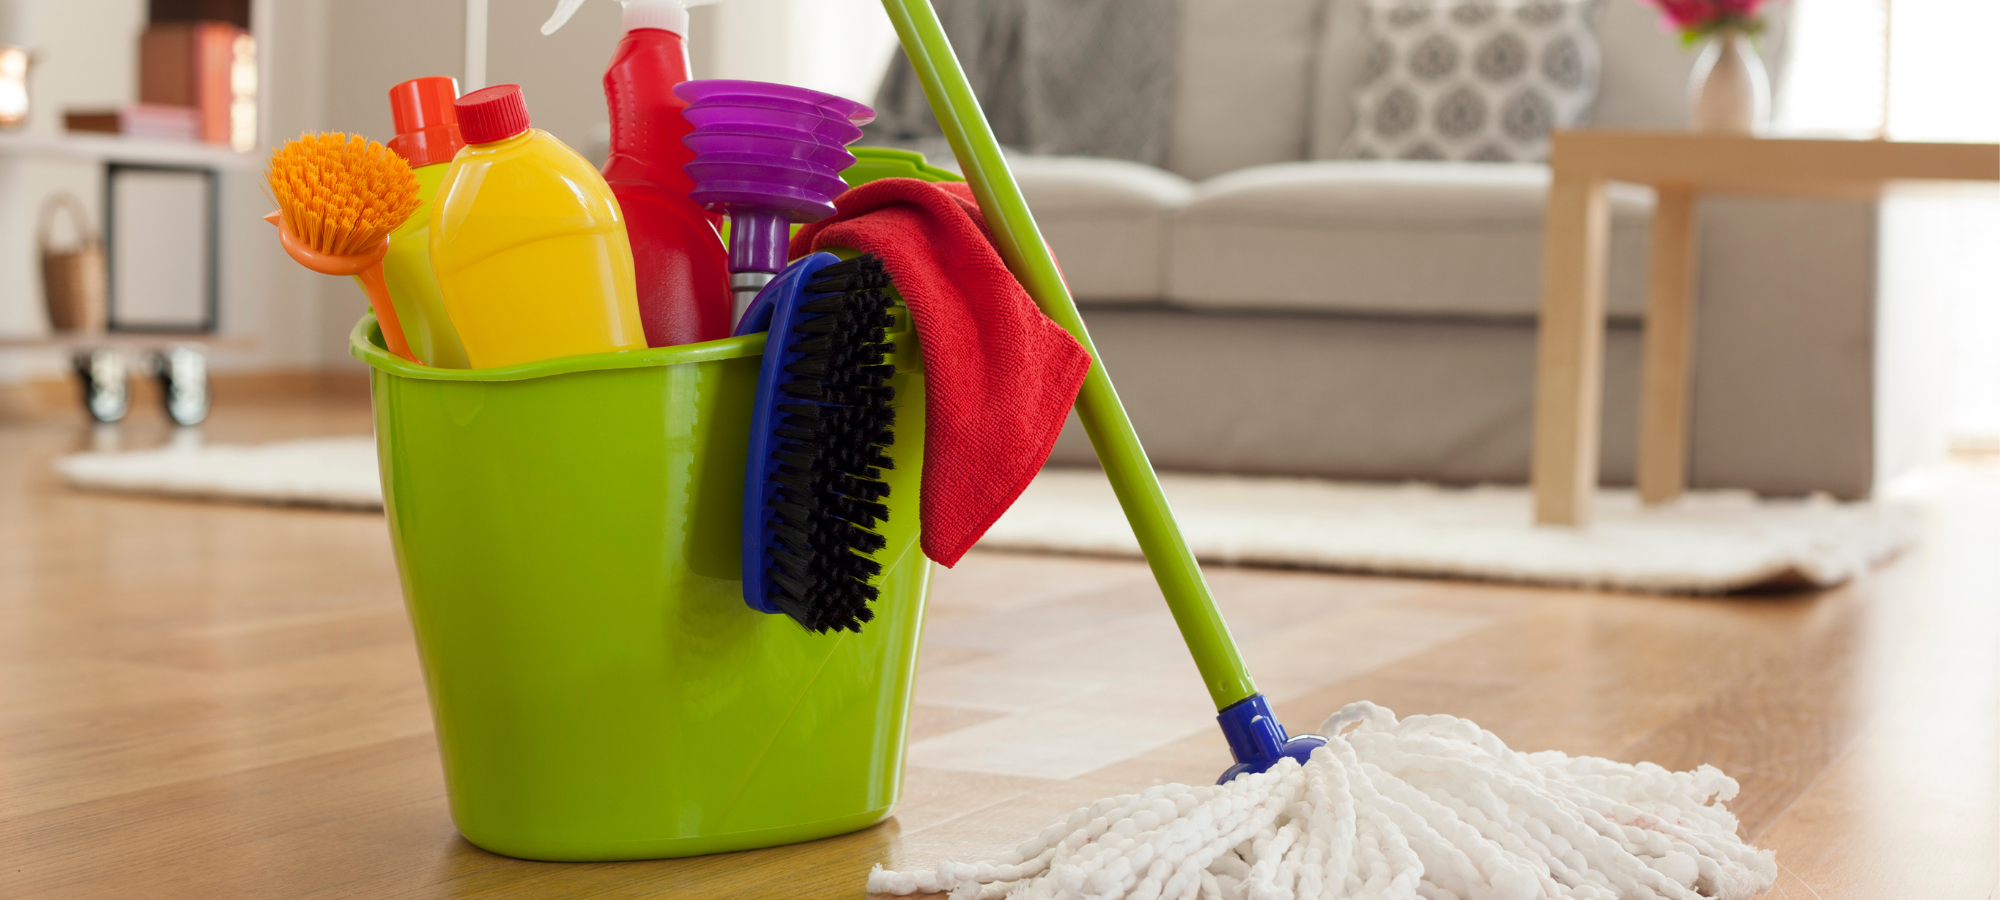 Preparing to Sell: Cleaning